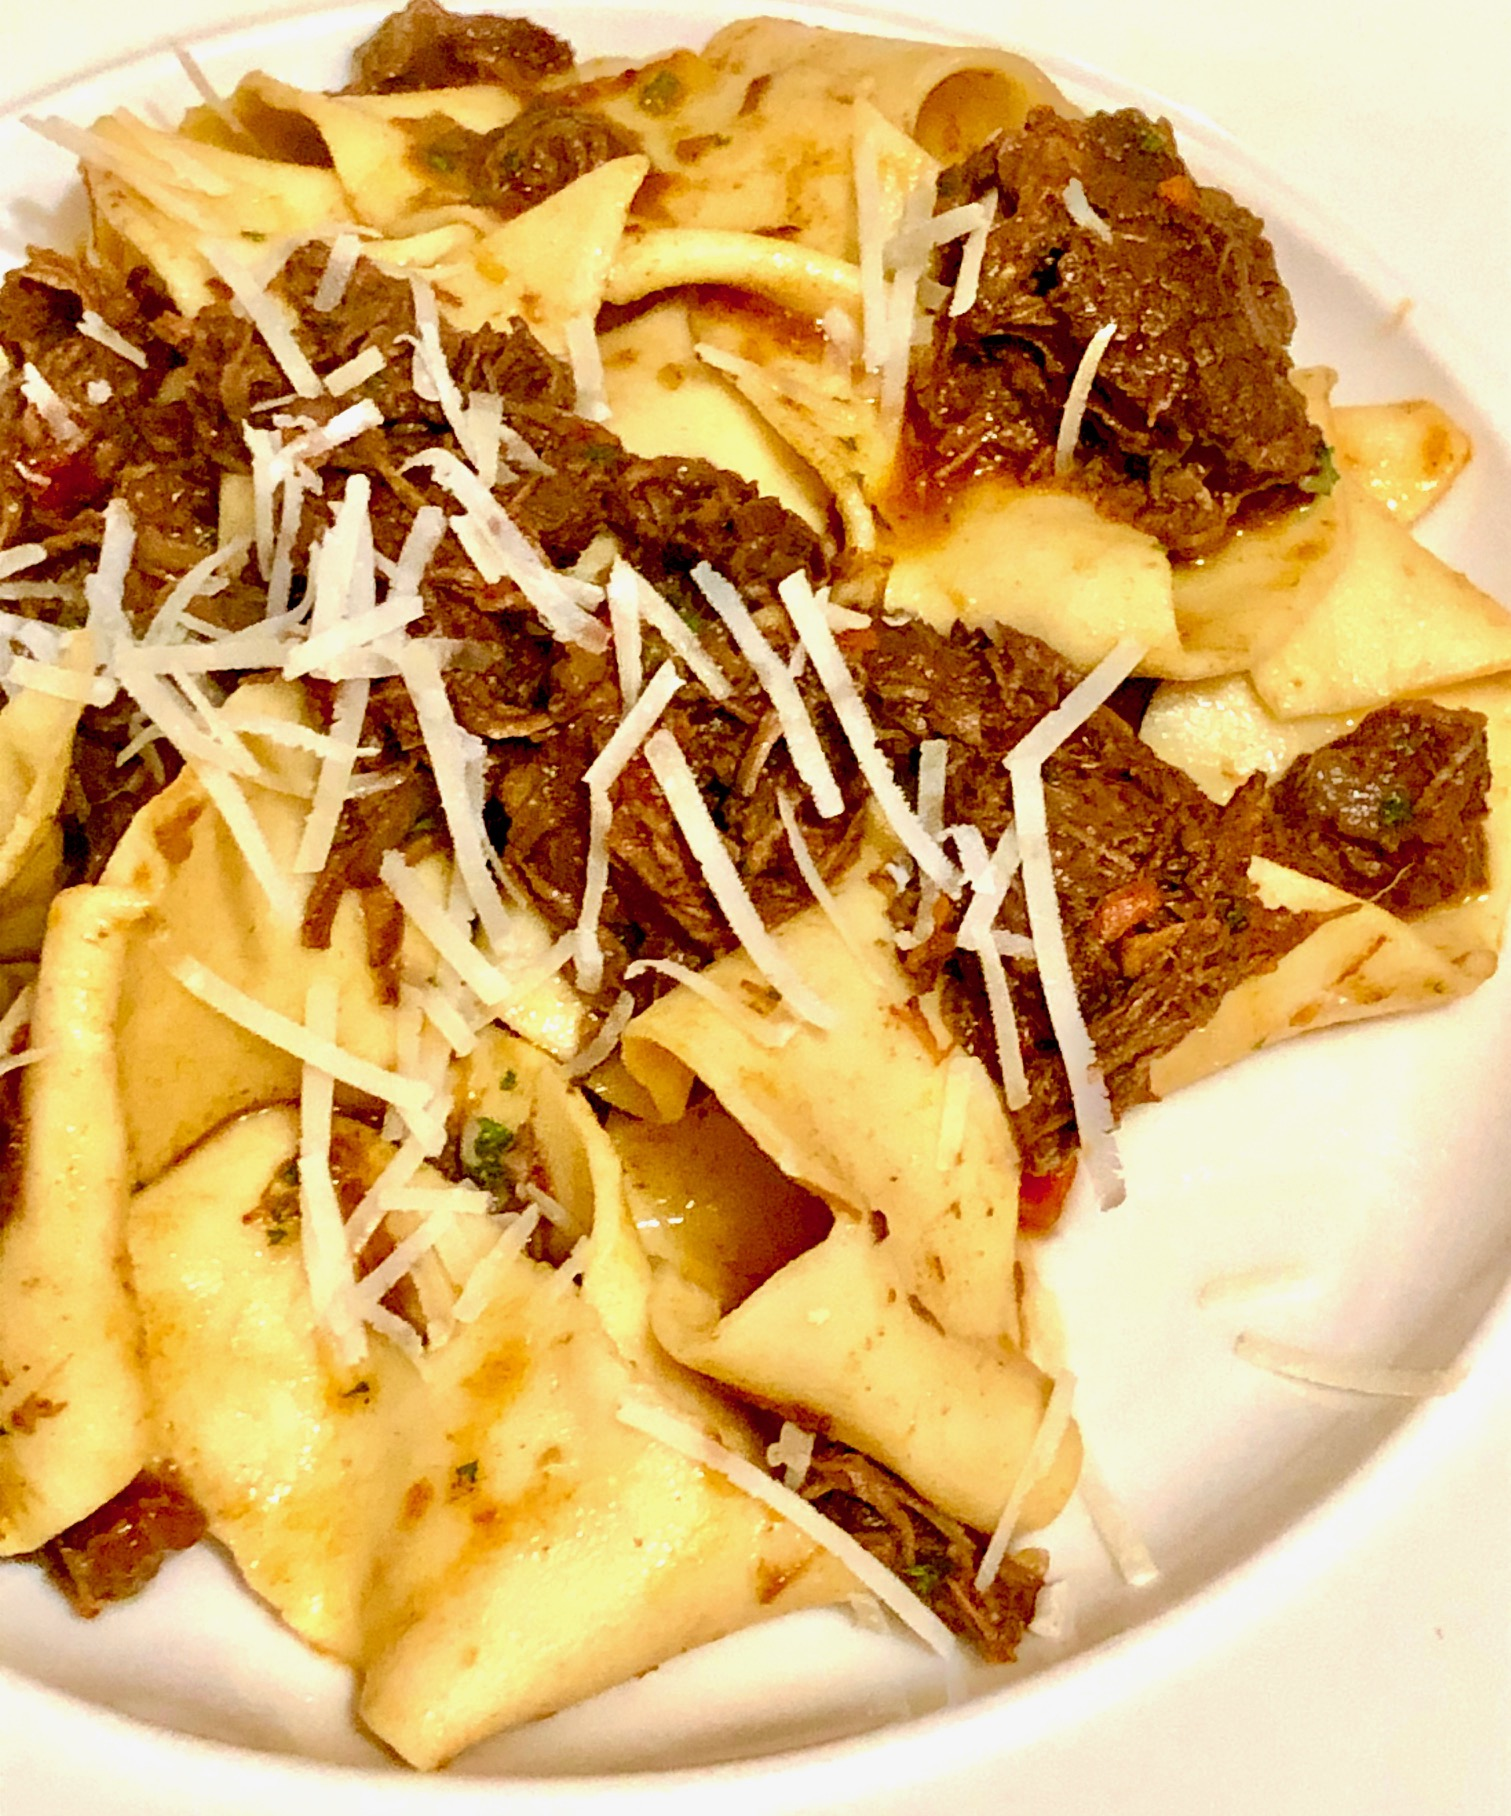 Day 6: Beef Shin Ragu with Pappardelle